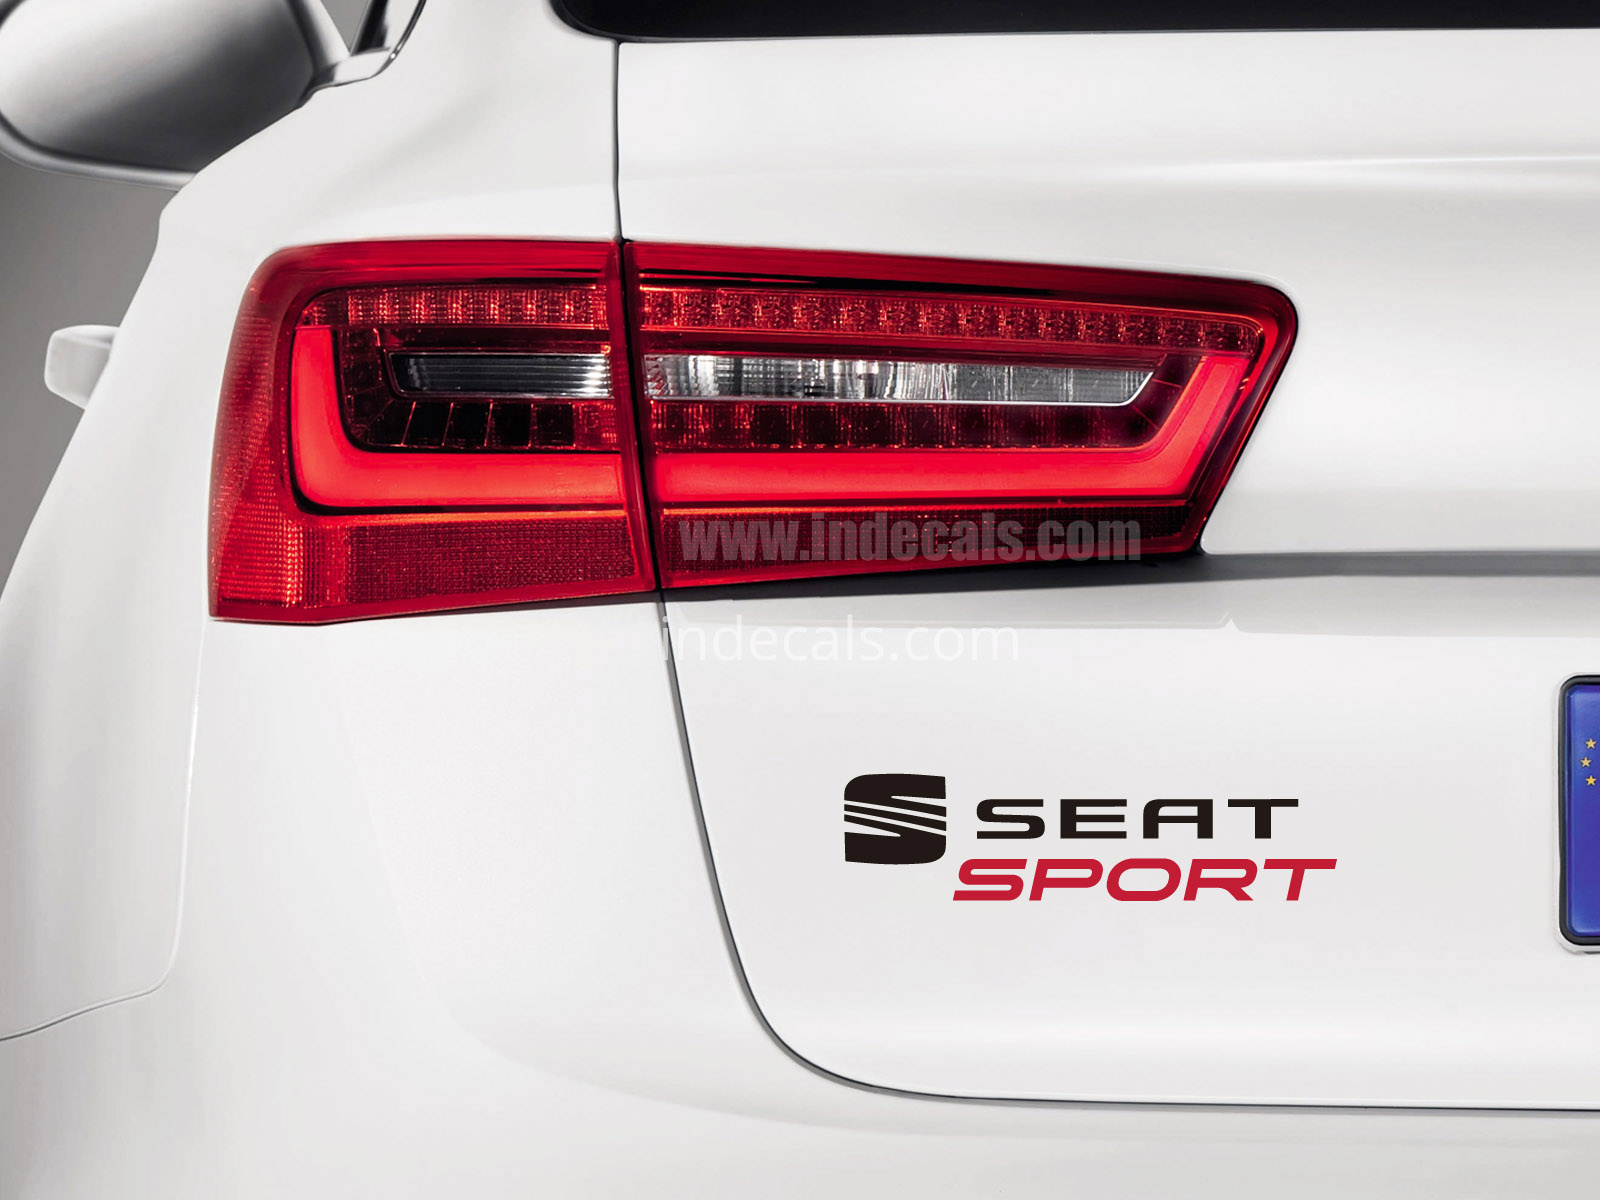 1 x Seat Sports Sticker for Trunk - Black & Red